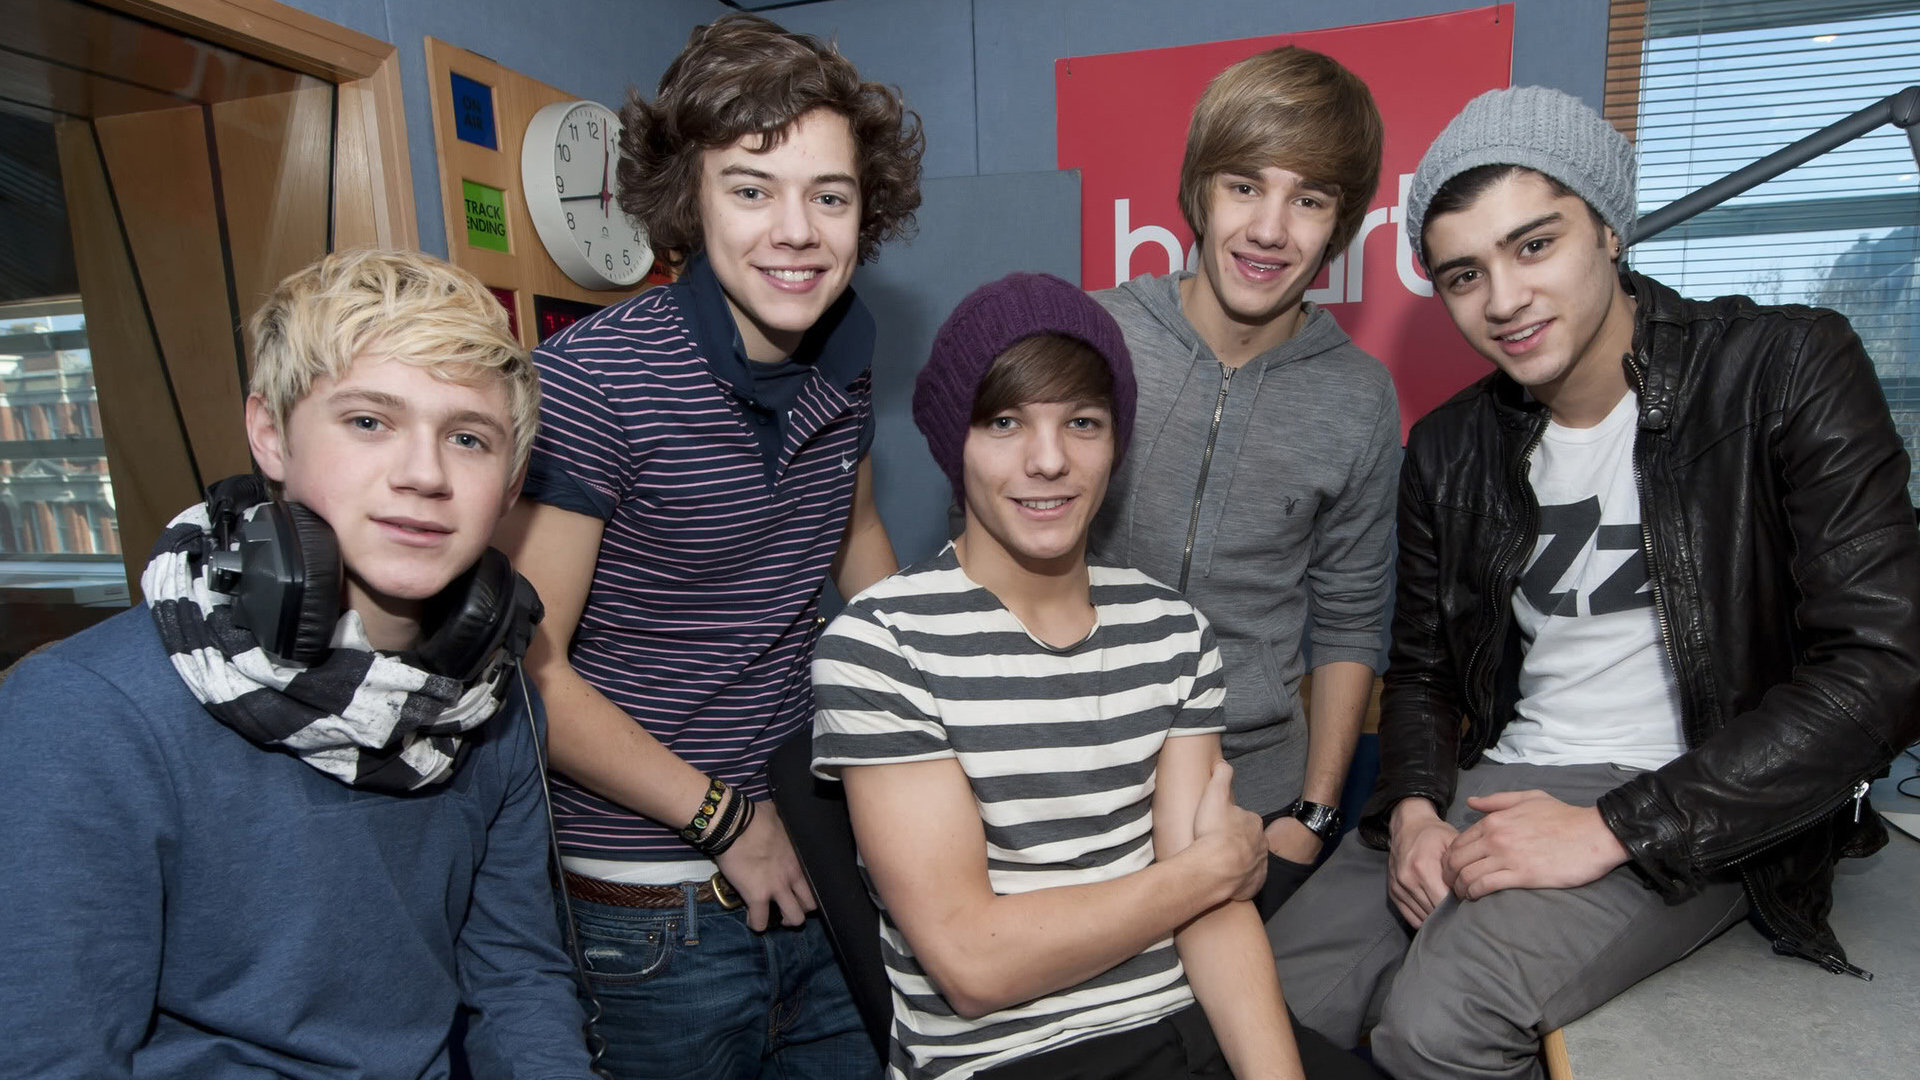 Download 1080p One Direction Pc Wallpaper Id - One Direction Wallpaper Phone - HD Wallpaper